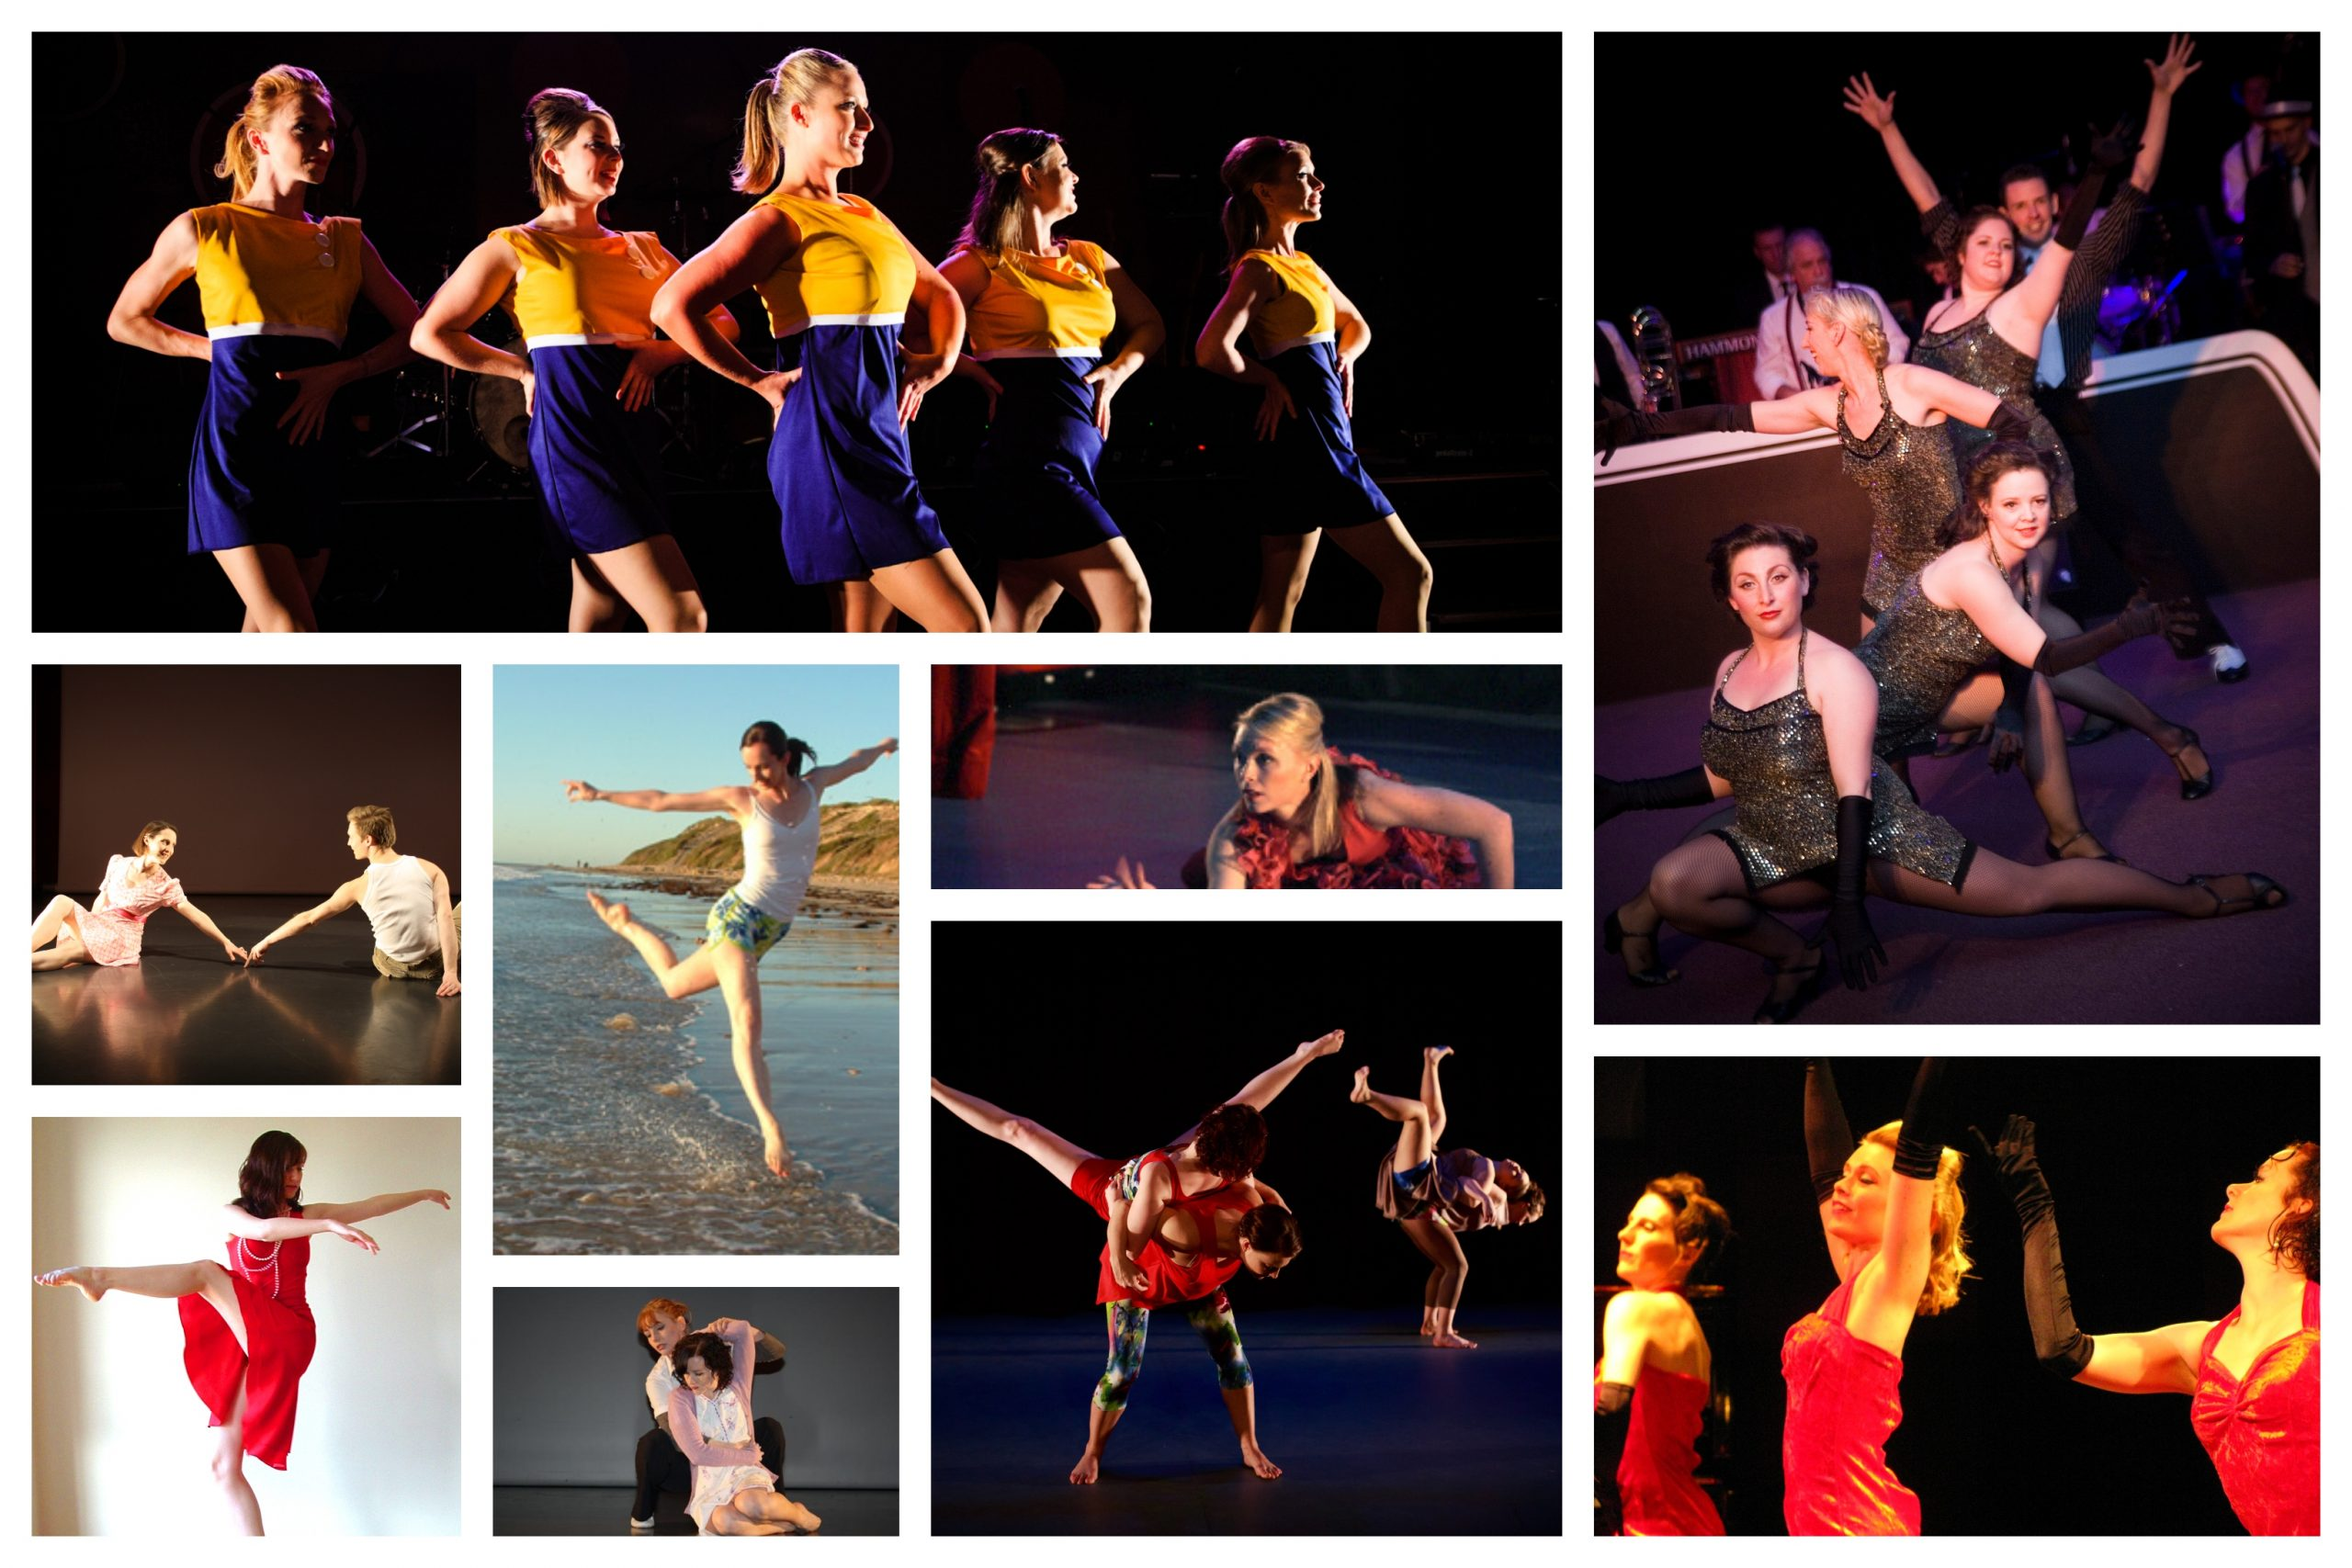 Collage of performance photos